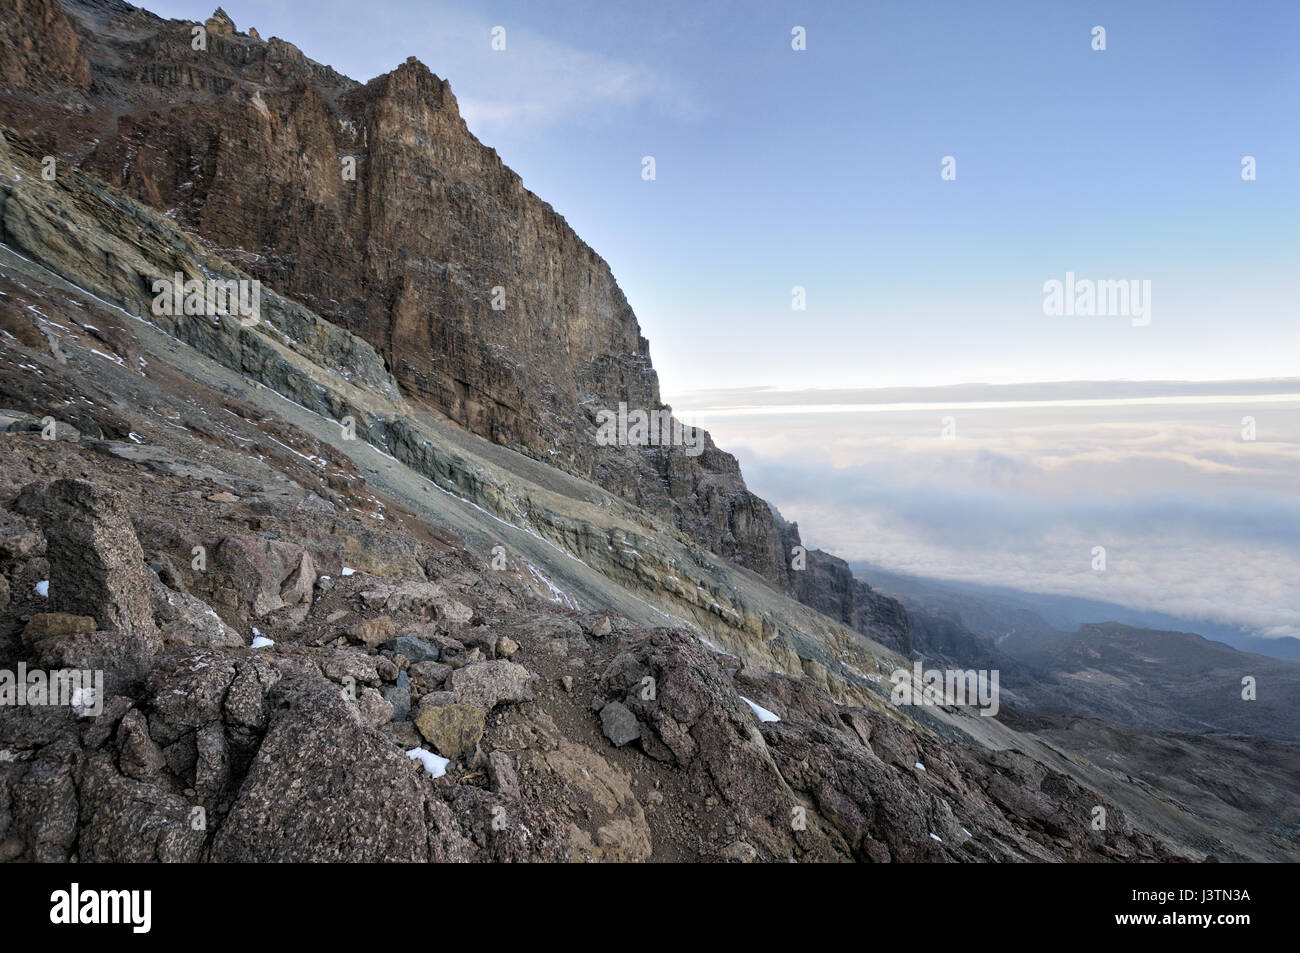 Cliffs of the Western Breach early in the morning, Mount Kilimanjaro National Park, Tanzania Stock Photo